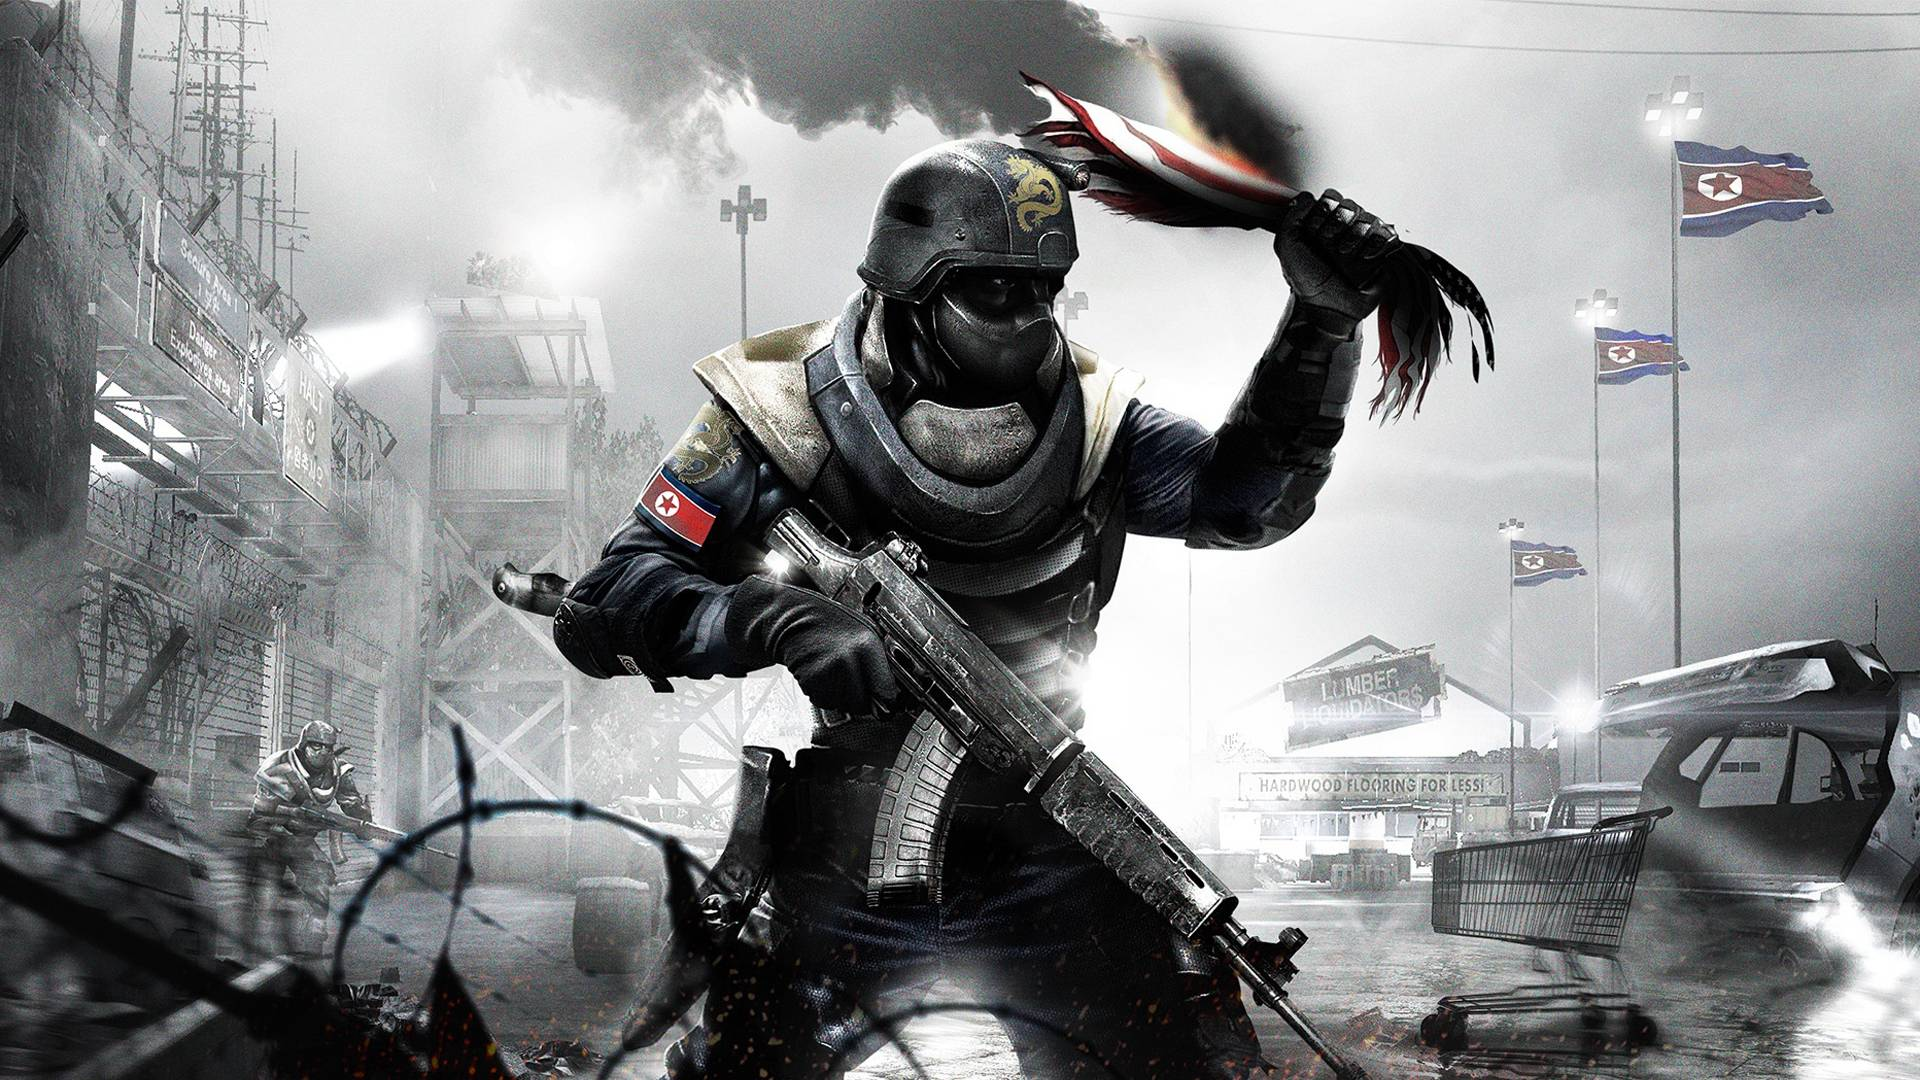 Homefront Wallpapers in full 1080P HD GamingBoltcom Video Game 1920x1080